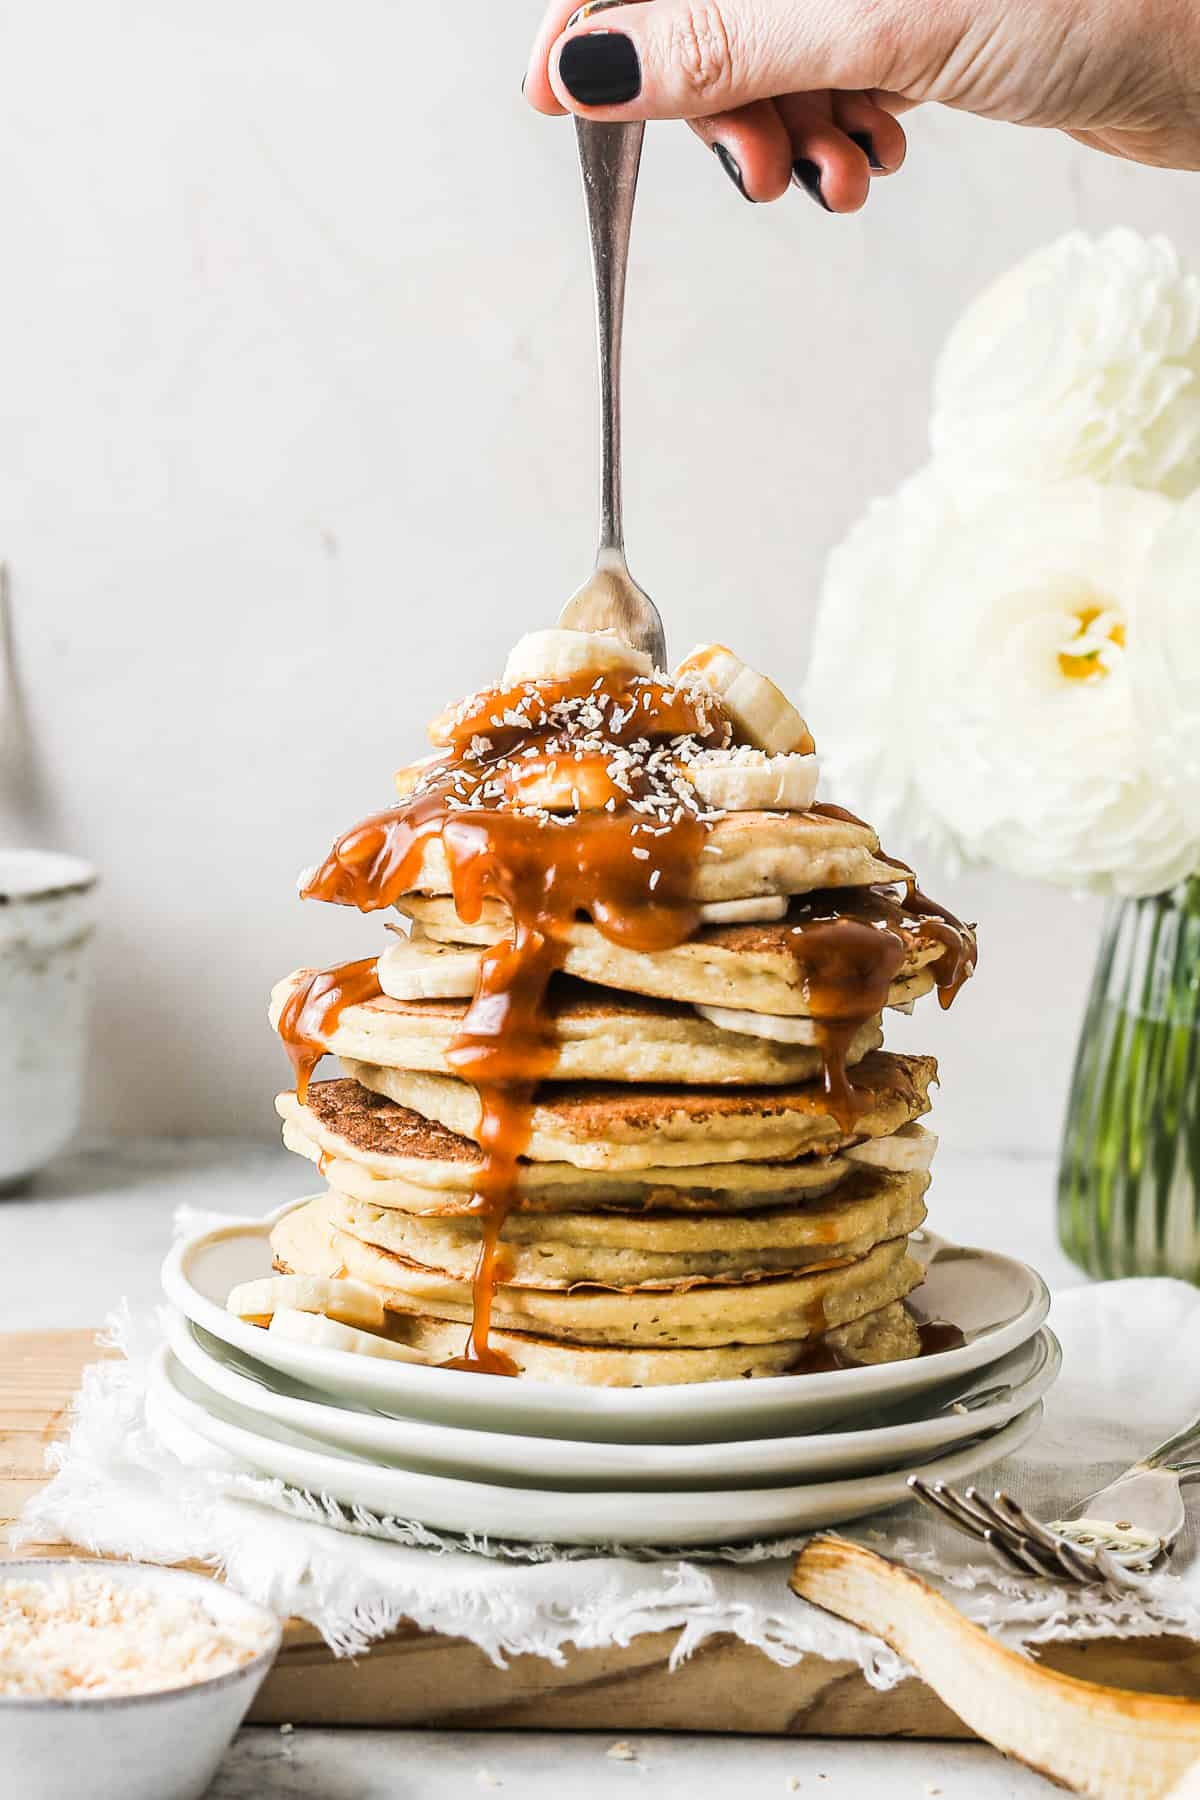 Stack of fluffy ricotta pancakes drizzled in caramel sauce and served with sliced bananas